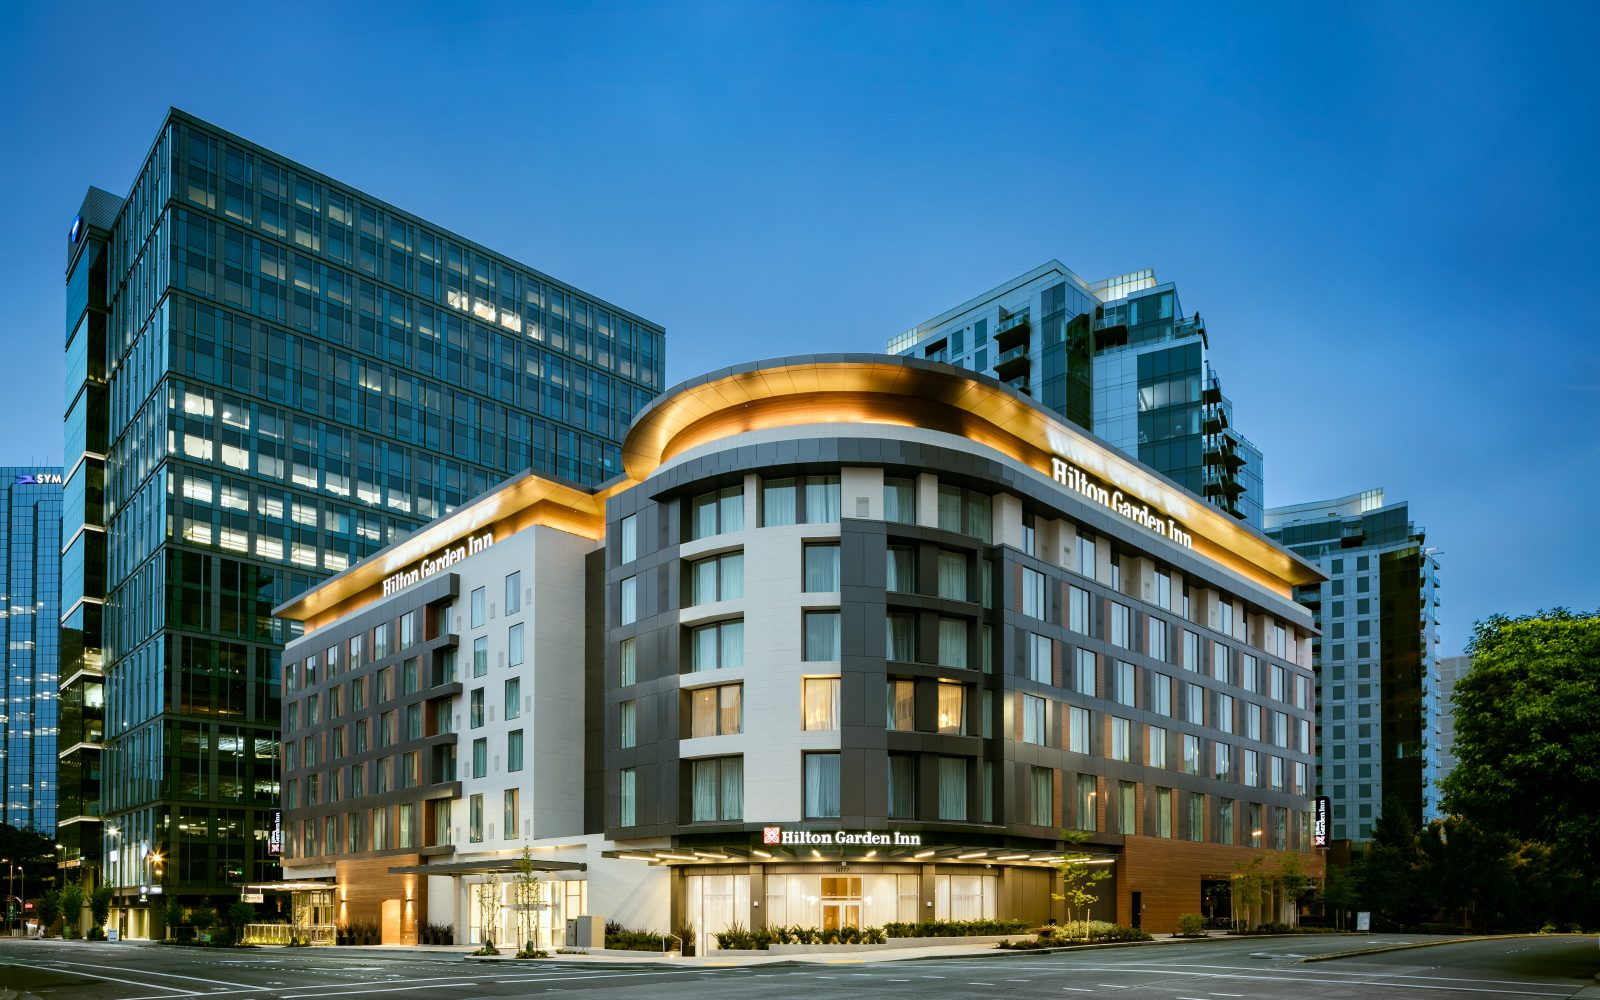 The Hotel Group Hospitality Management And Development Company